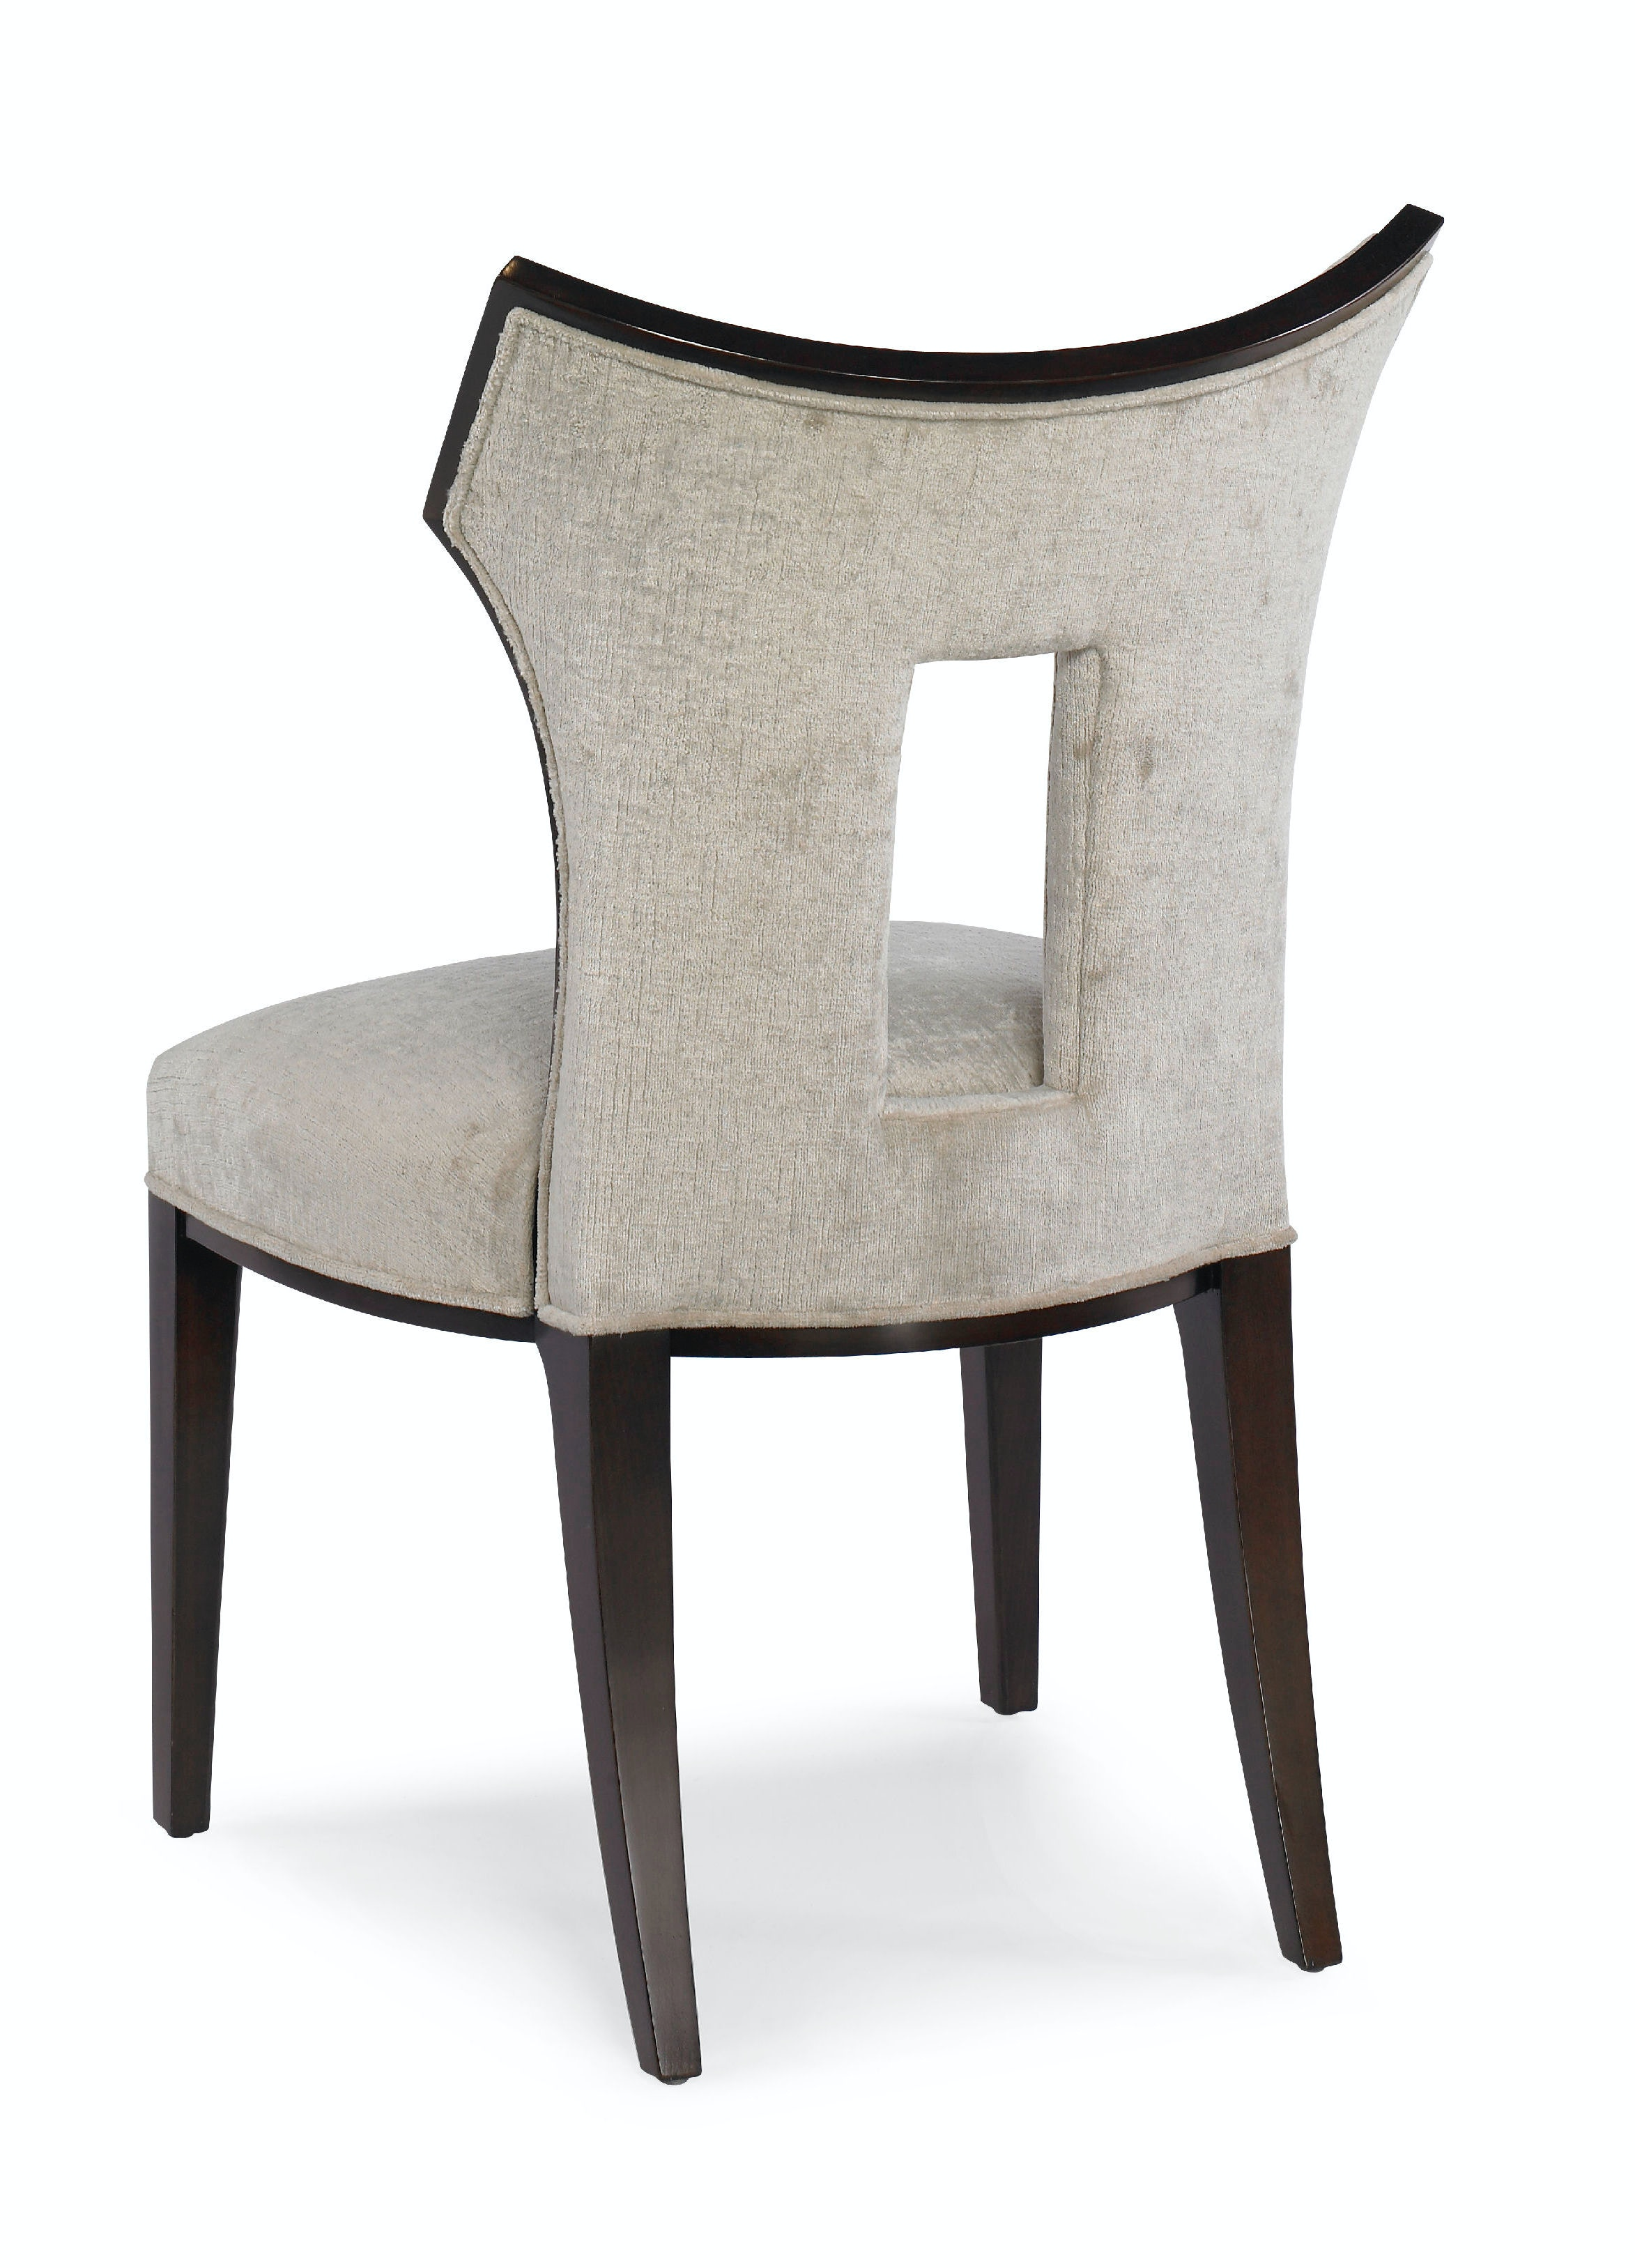 EJ Victor Dining Room Allison Paladino Hansen Side Chair